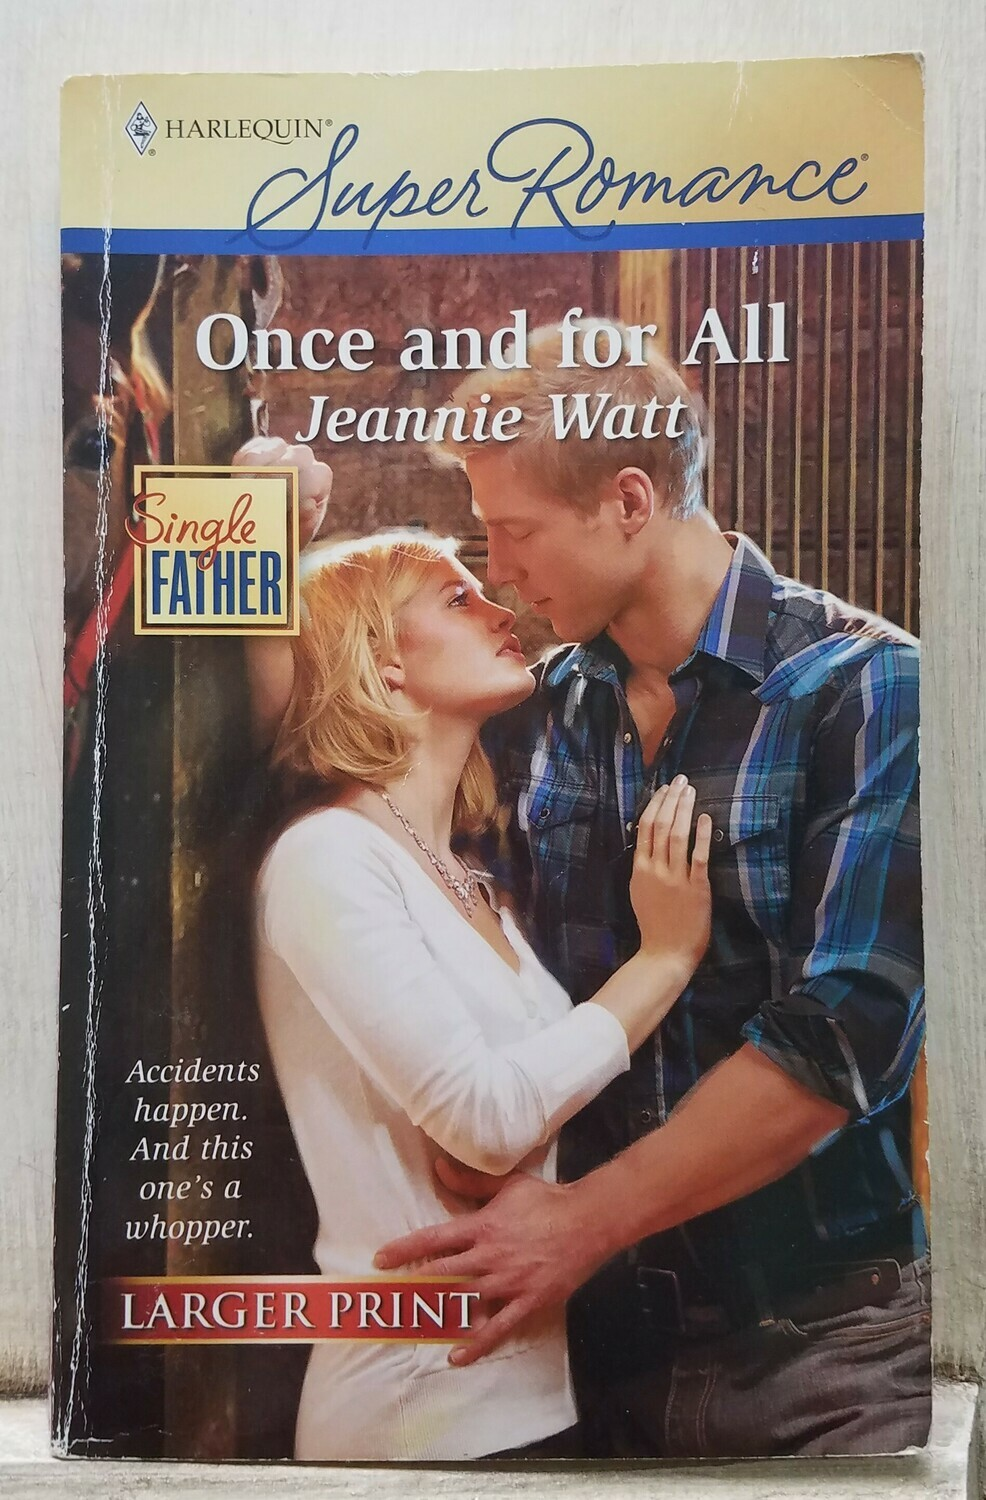 Once and for All by Jeannie Watt